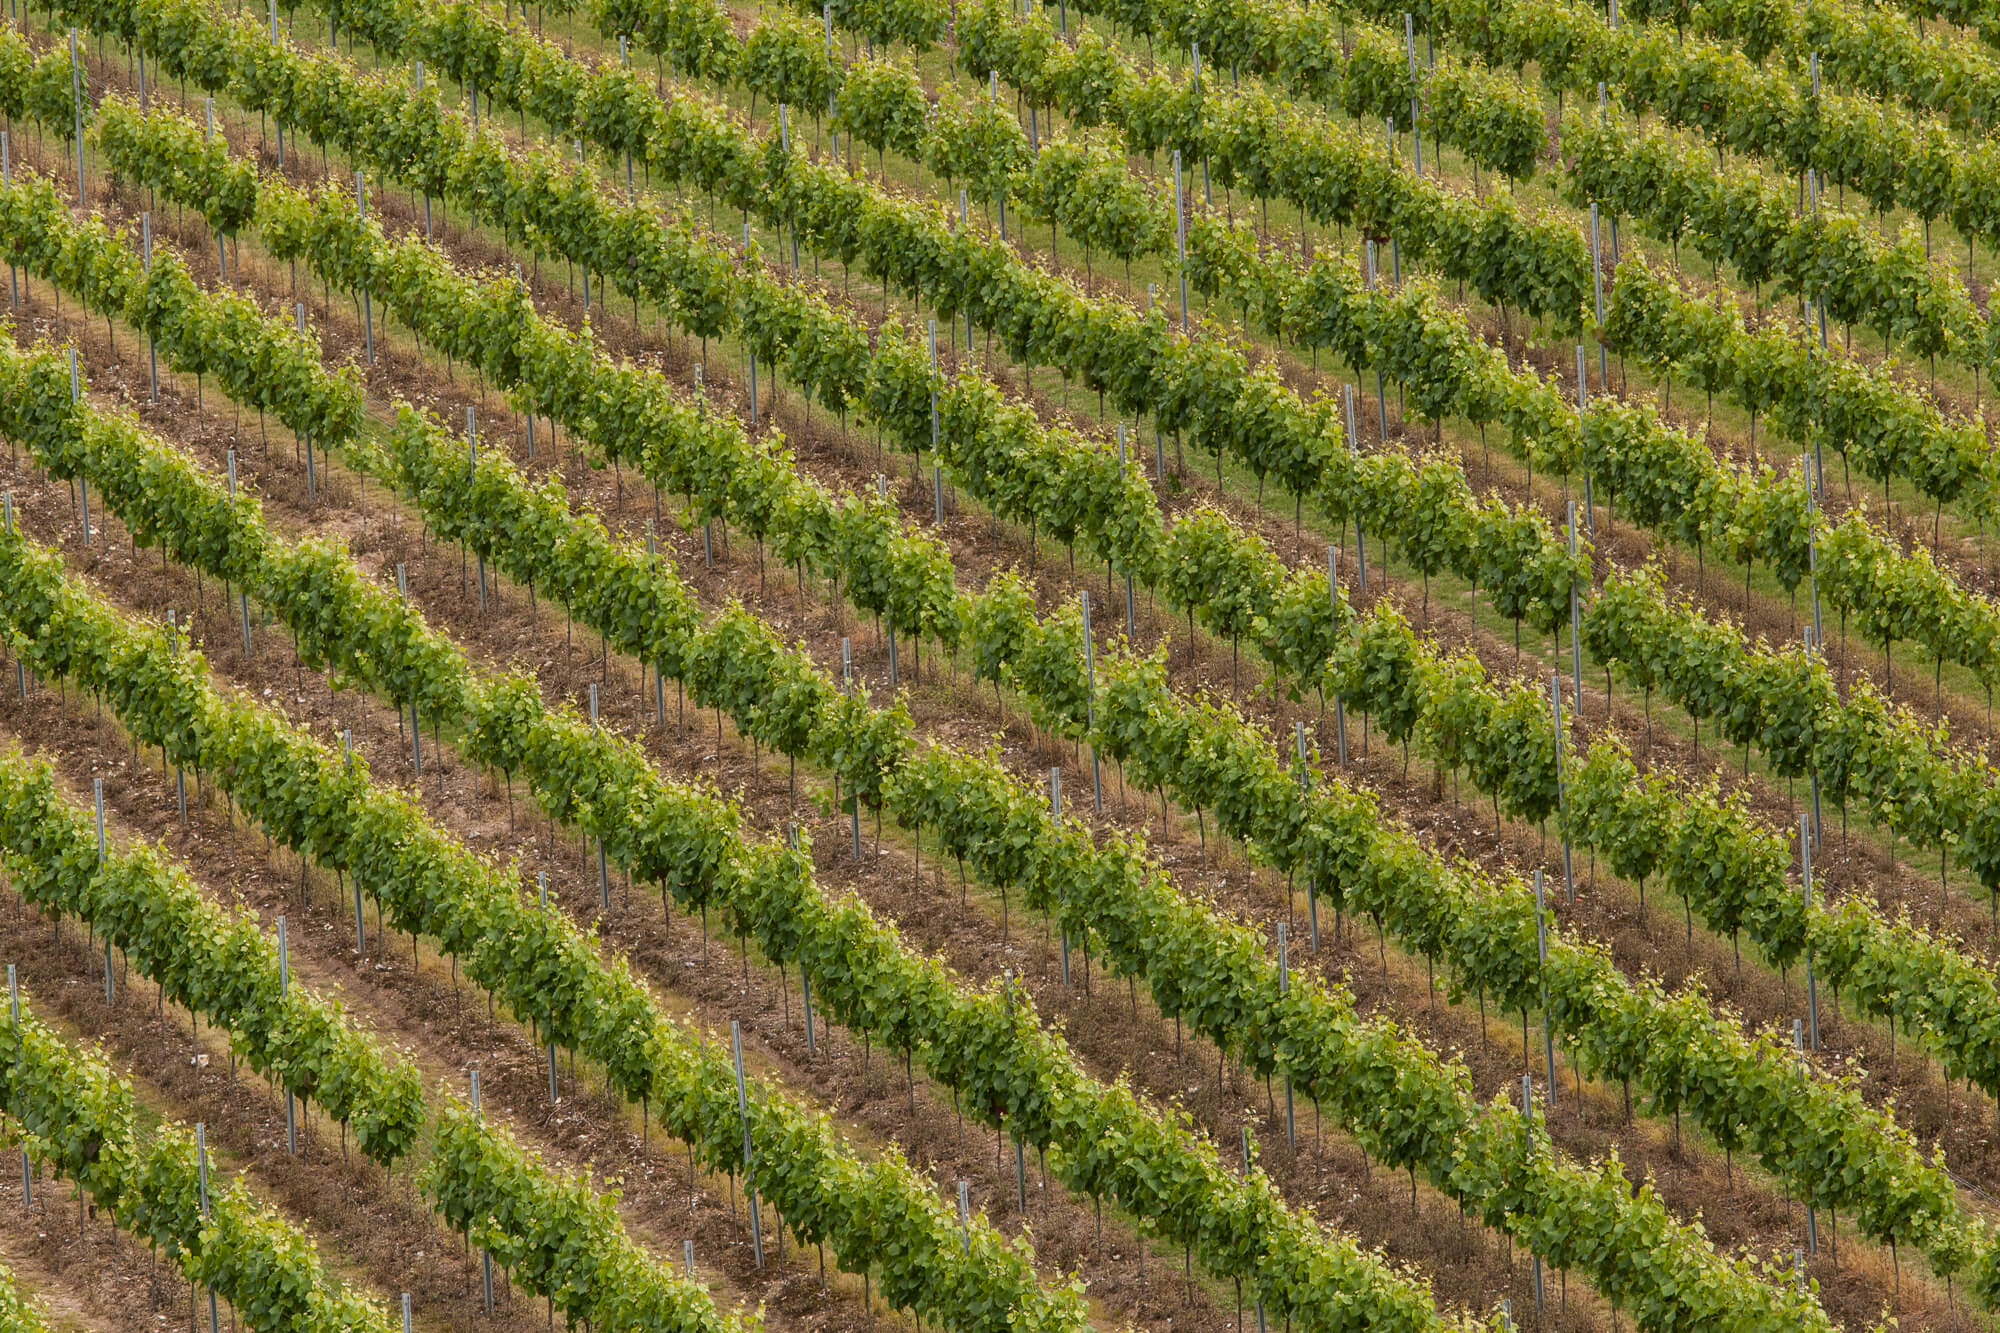 Aerial View of Vines